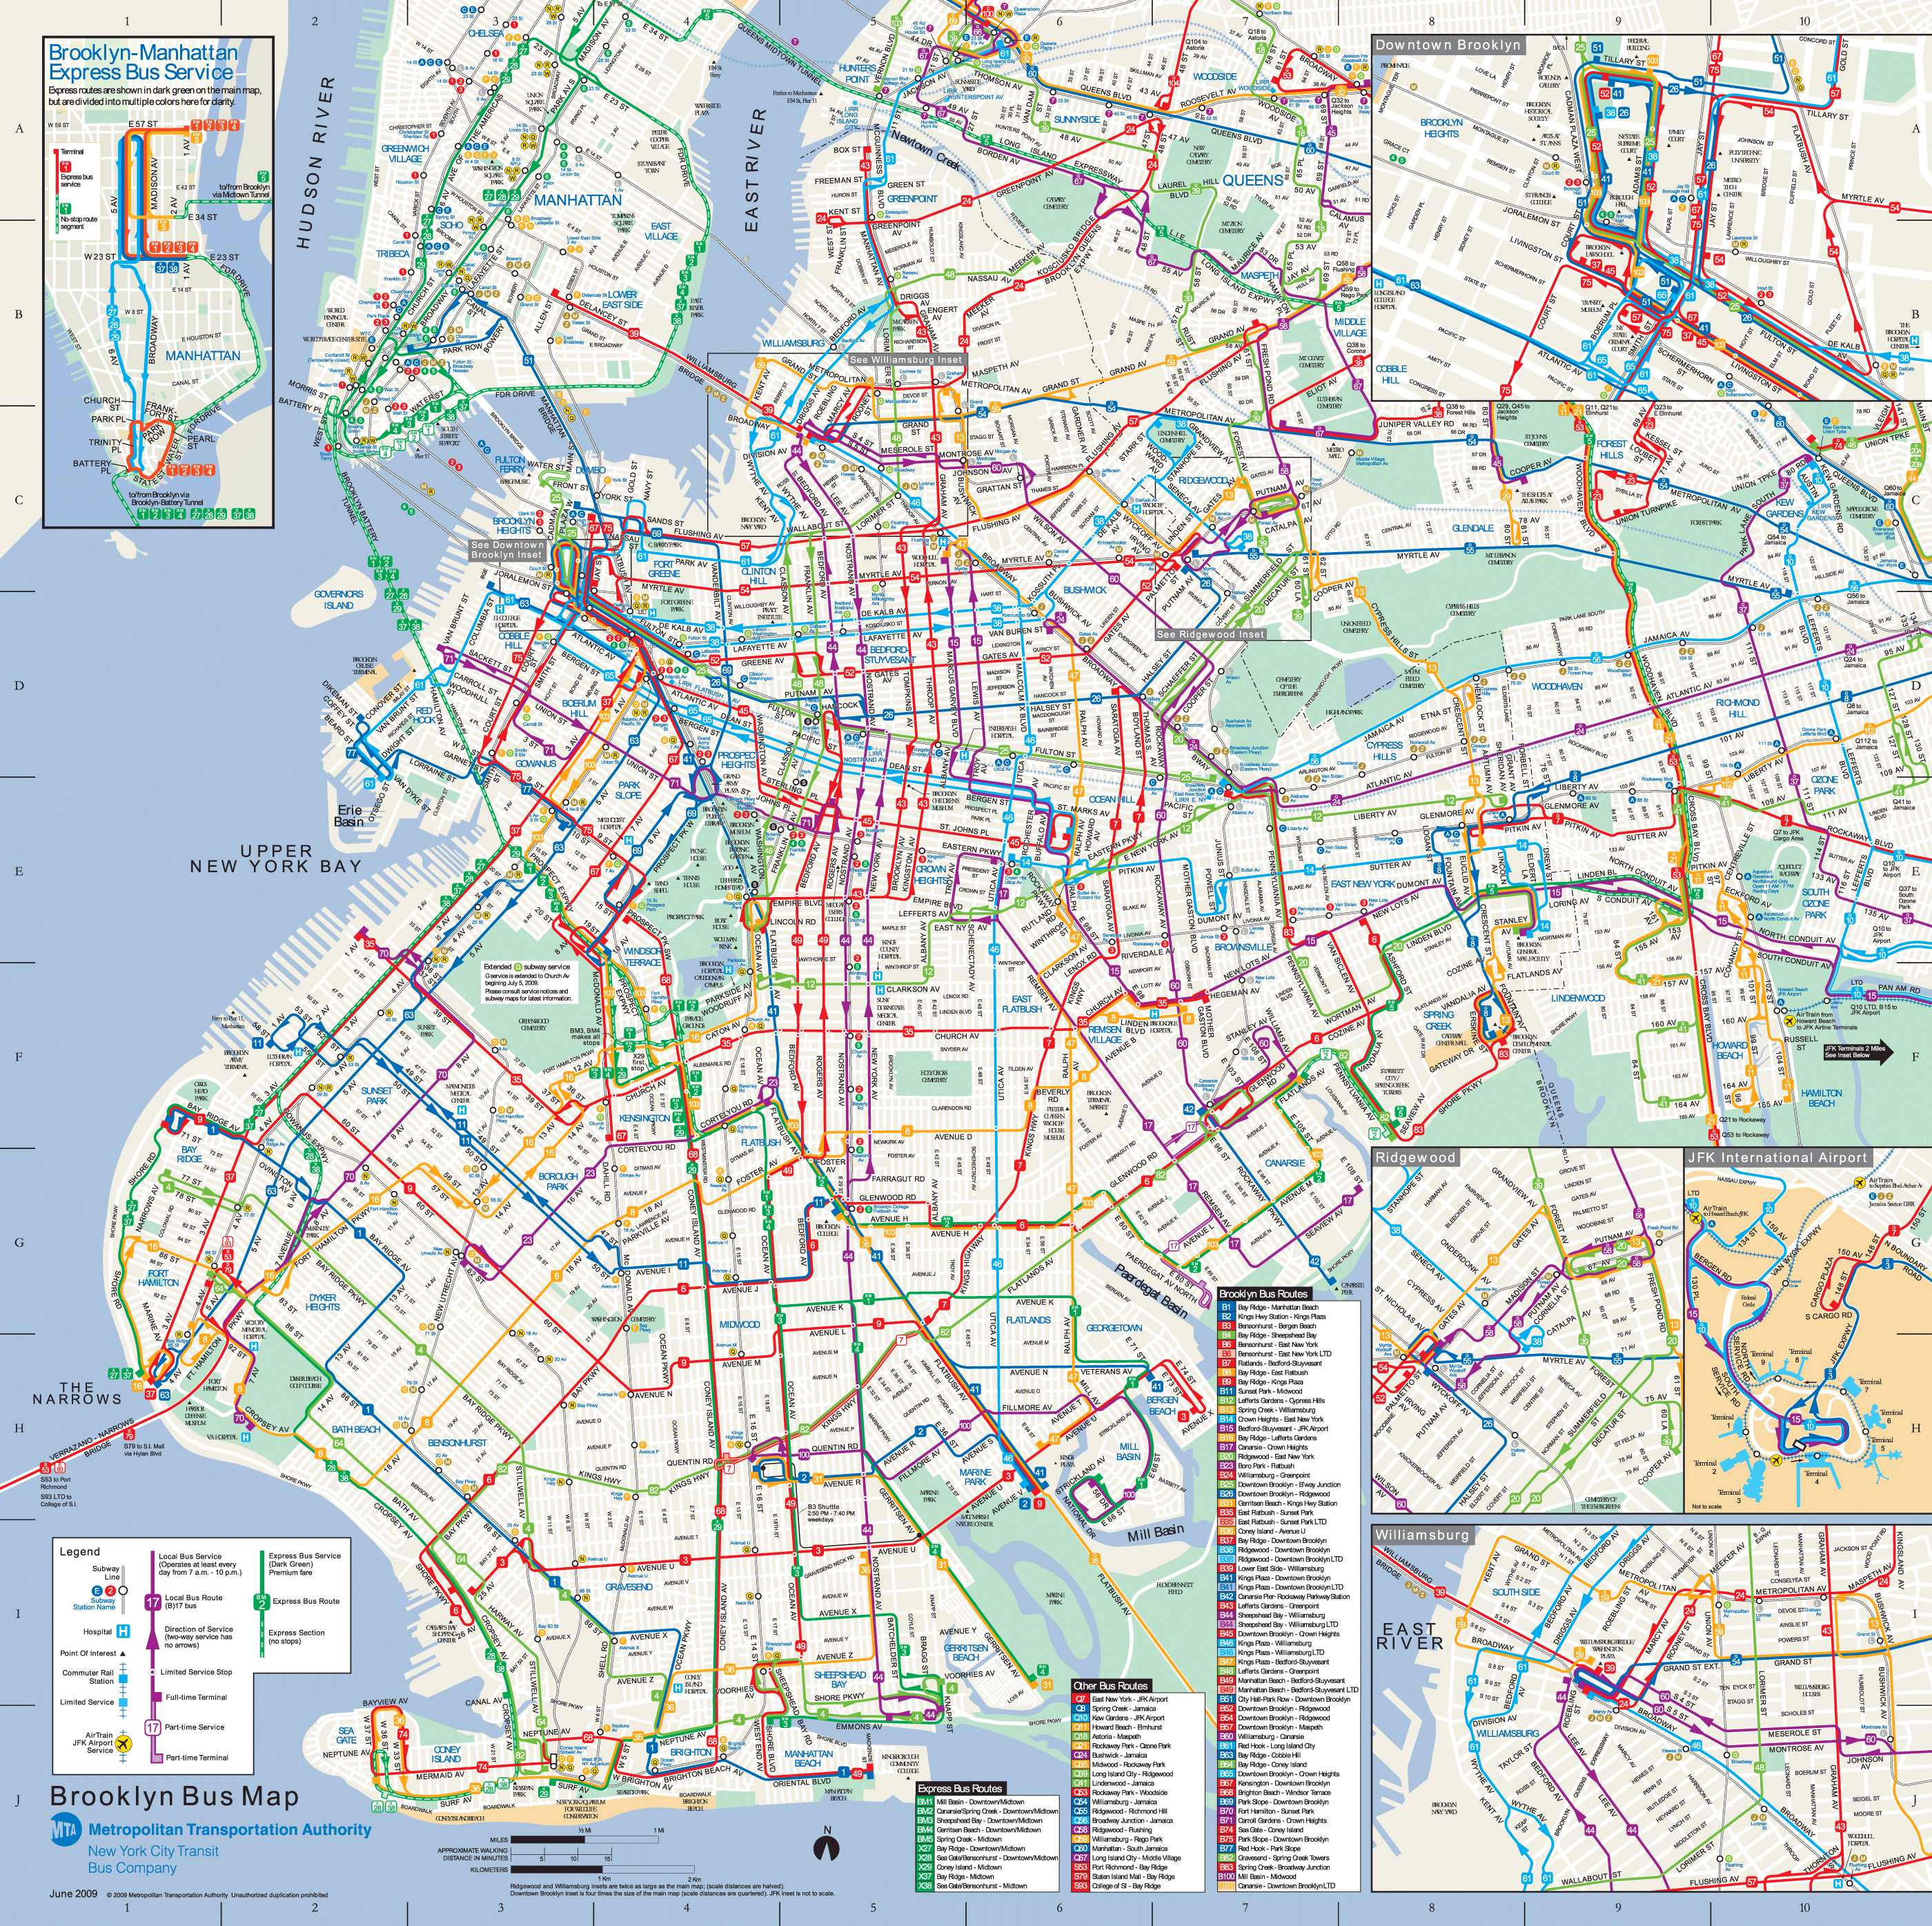 Brooklyn Bus Map Mapsofnet